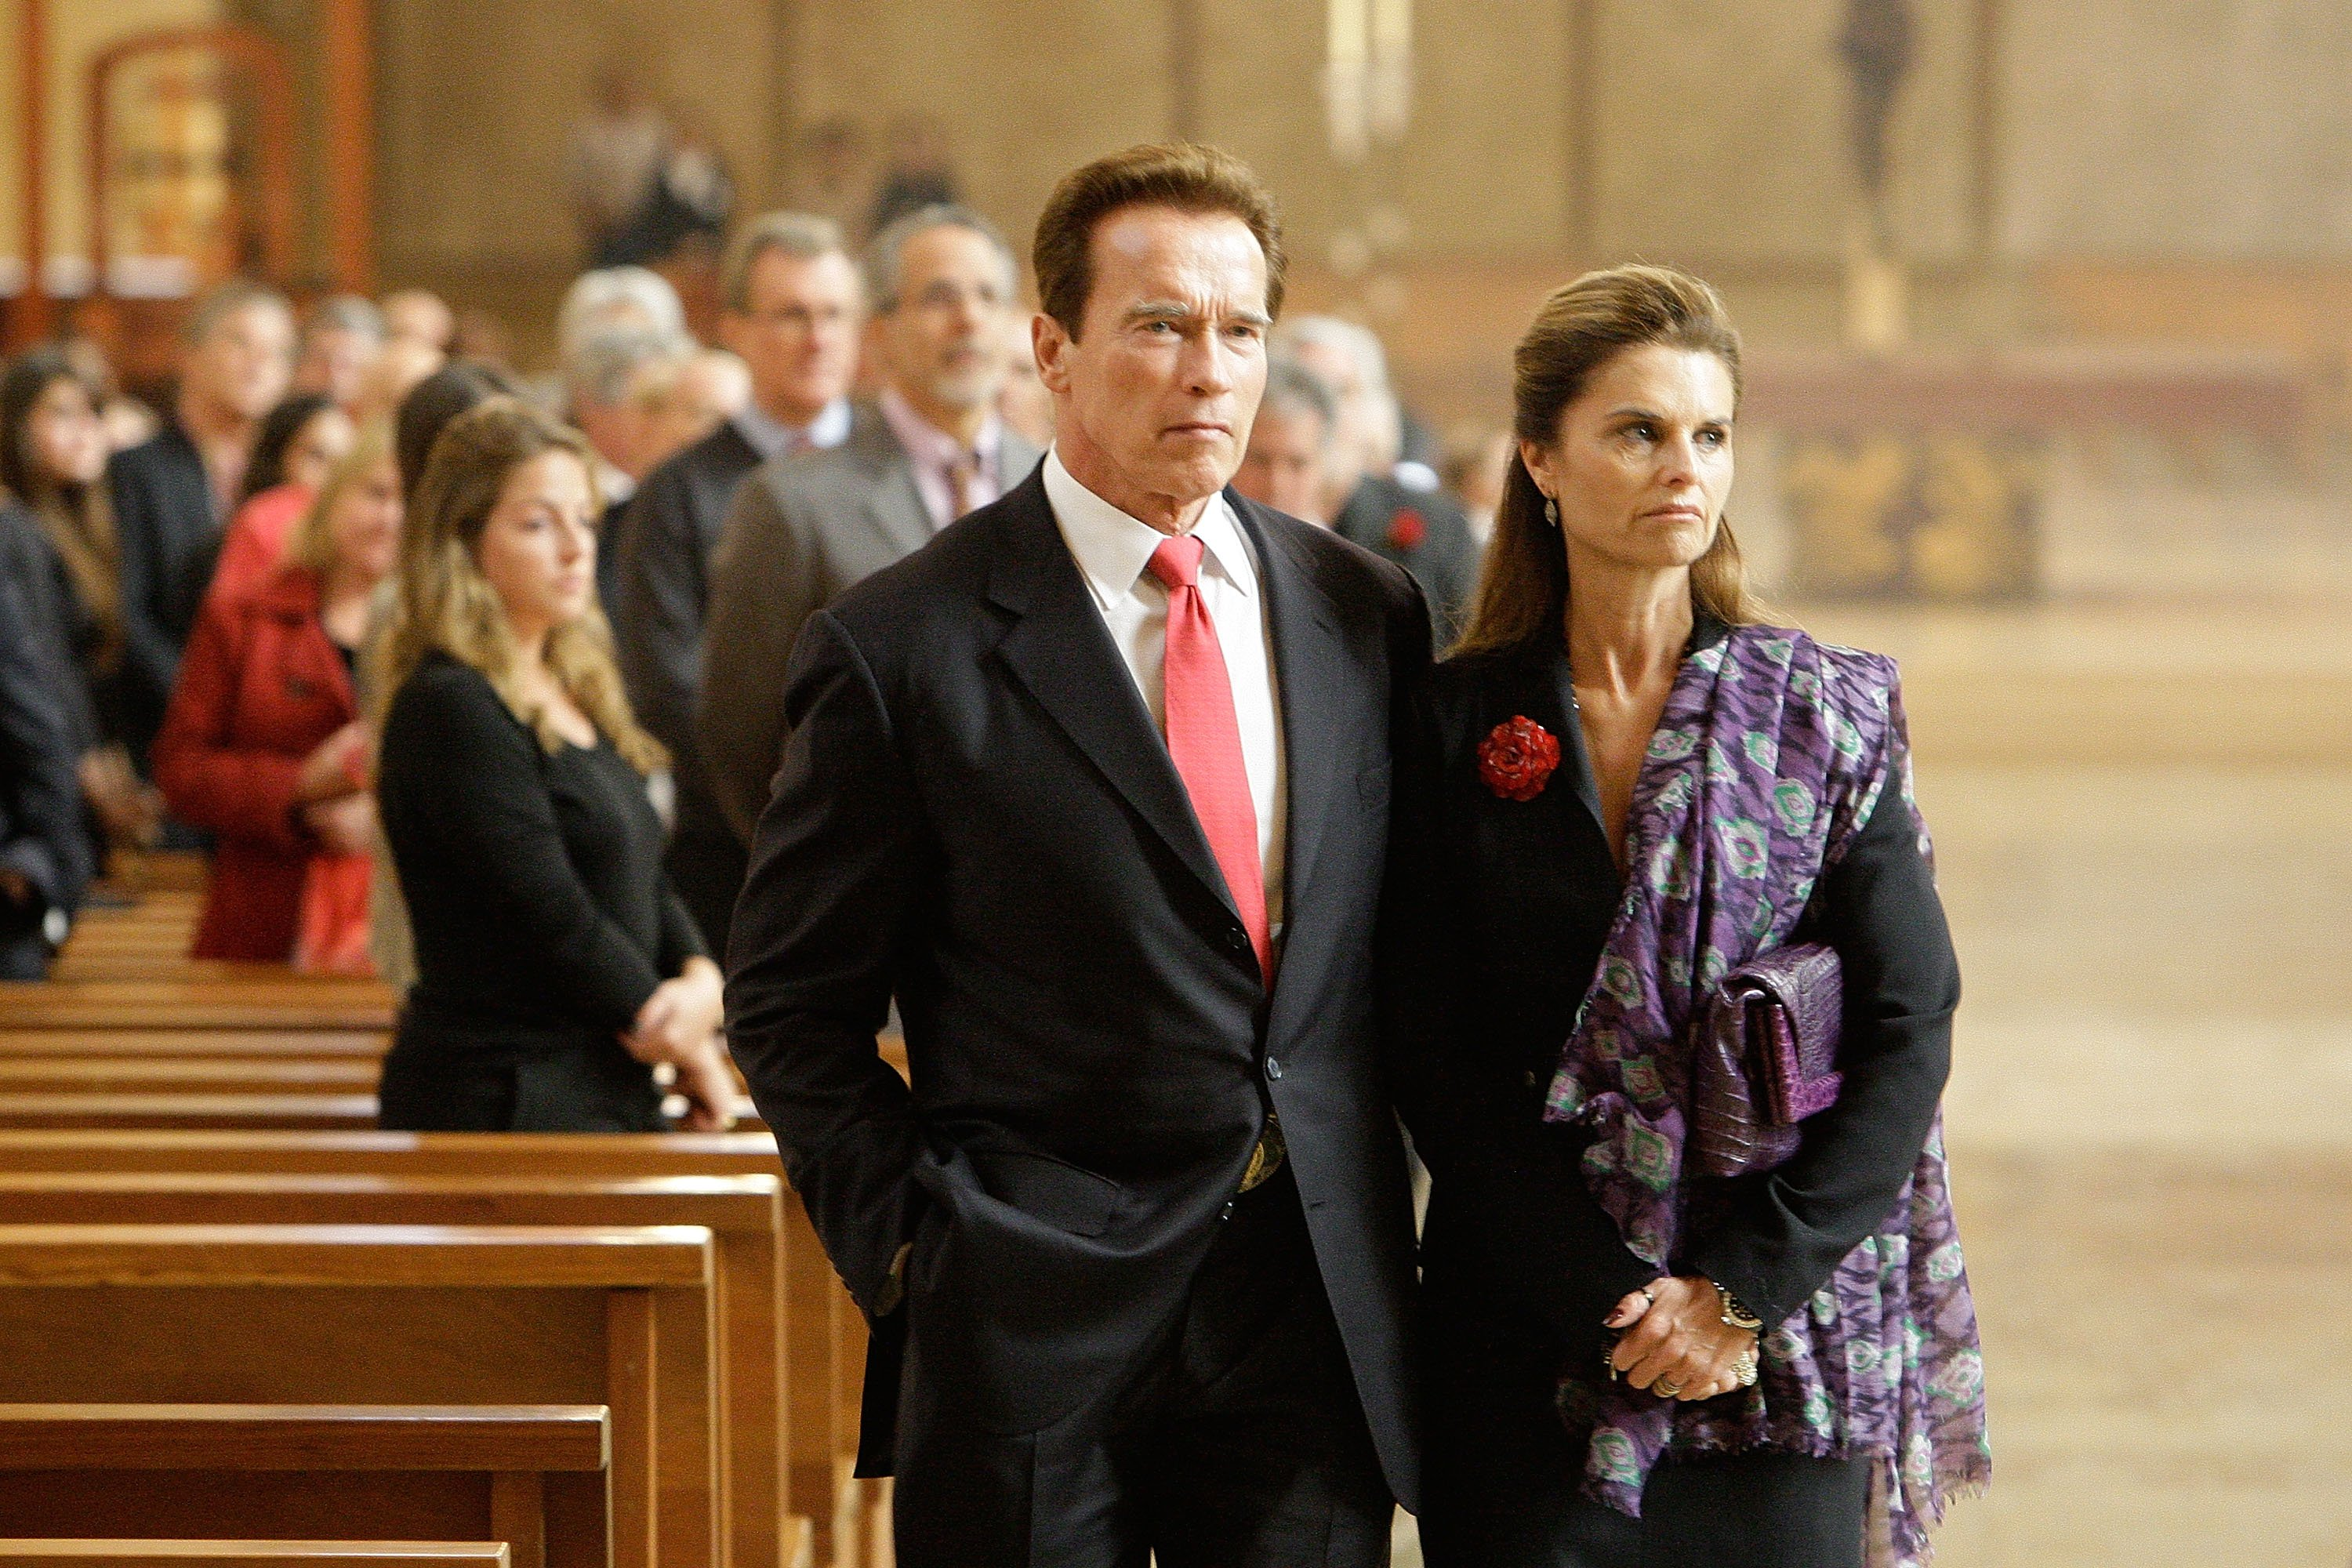 Image Credits: Getty Images / Reed Saxon-Pool | California Governor Arnold Schwarzenegger and wife Maria Shriver attend the funeral Mass for Italian film mogul and Hollywood producer Dino De Laurentiis at the Cathedral of Our Lady of the Angels on November 15, 2010 in Los Angeles, California.